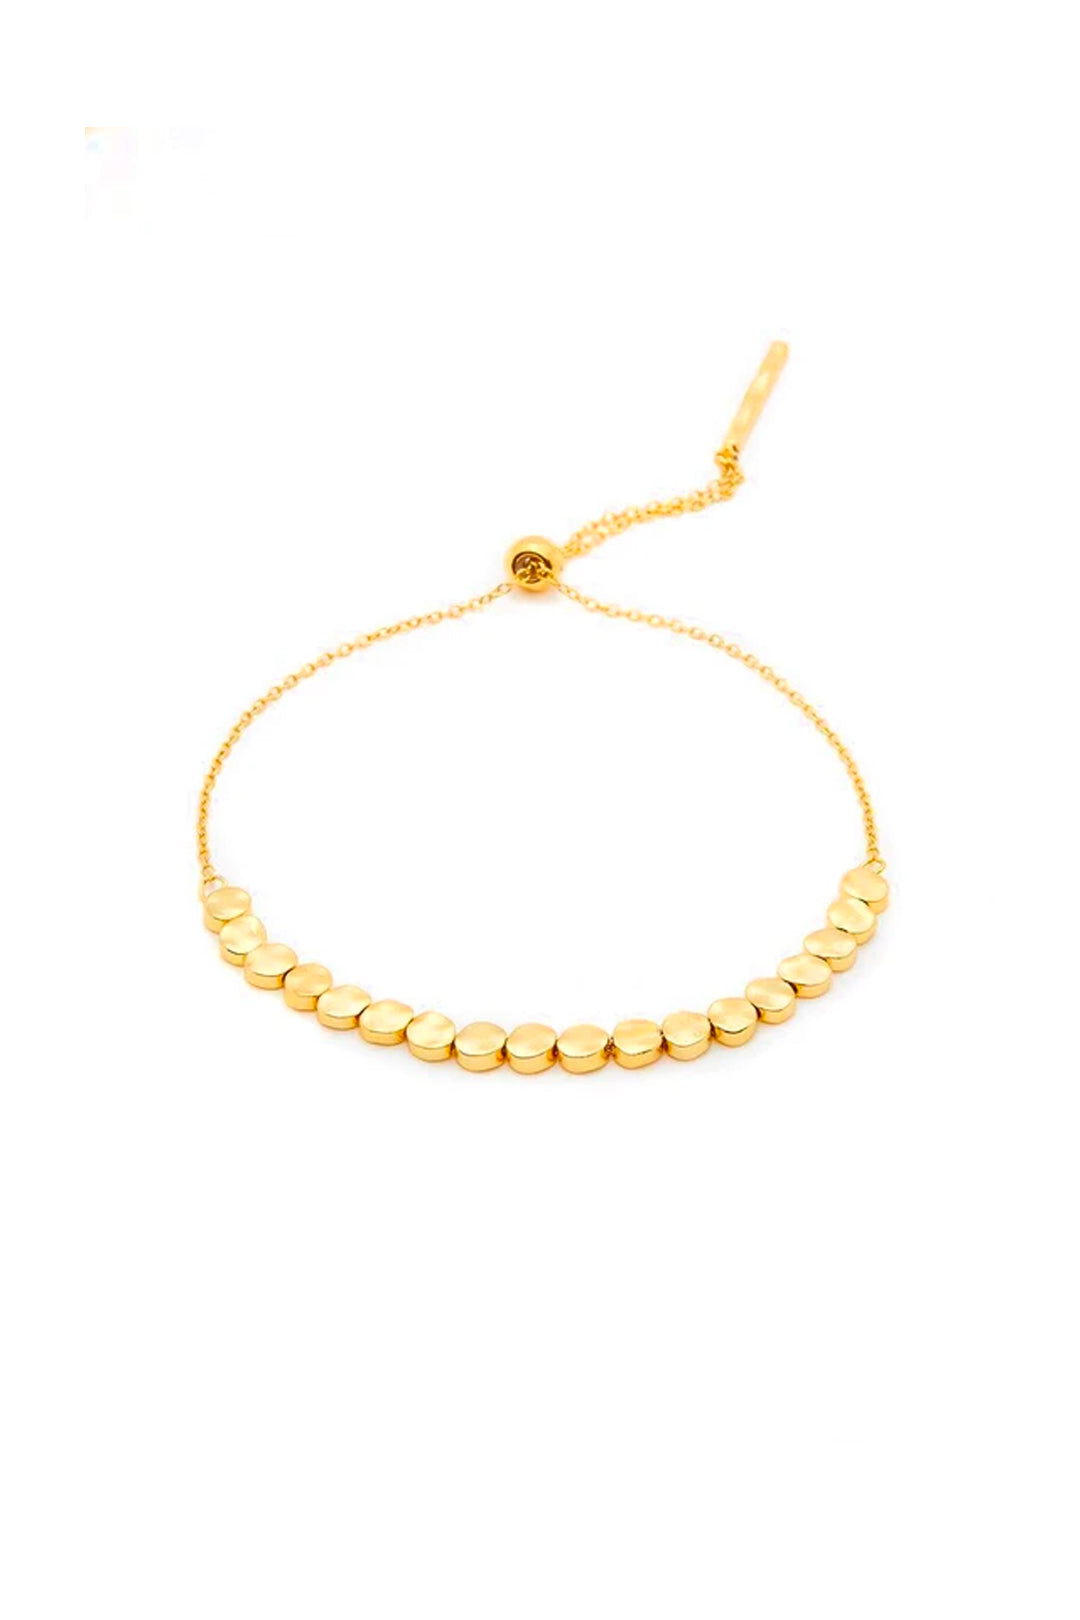 Chloe Small Bracelet - Gold